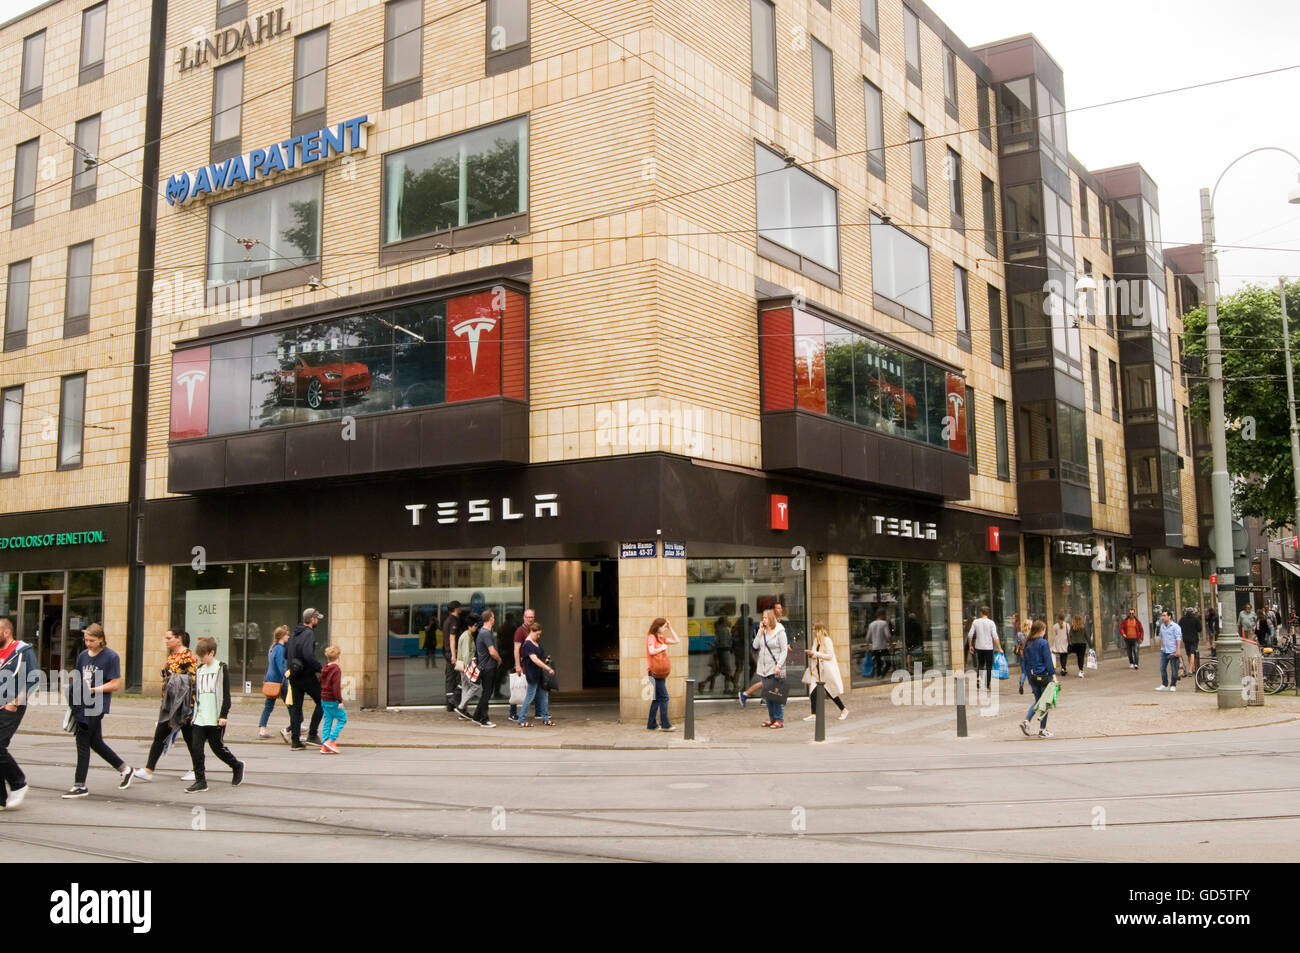 tesla car showroom Gothenburg Sweden high street dealer dealership dealerships showrooms cars Gothenburg Göteborg - Stock Image